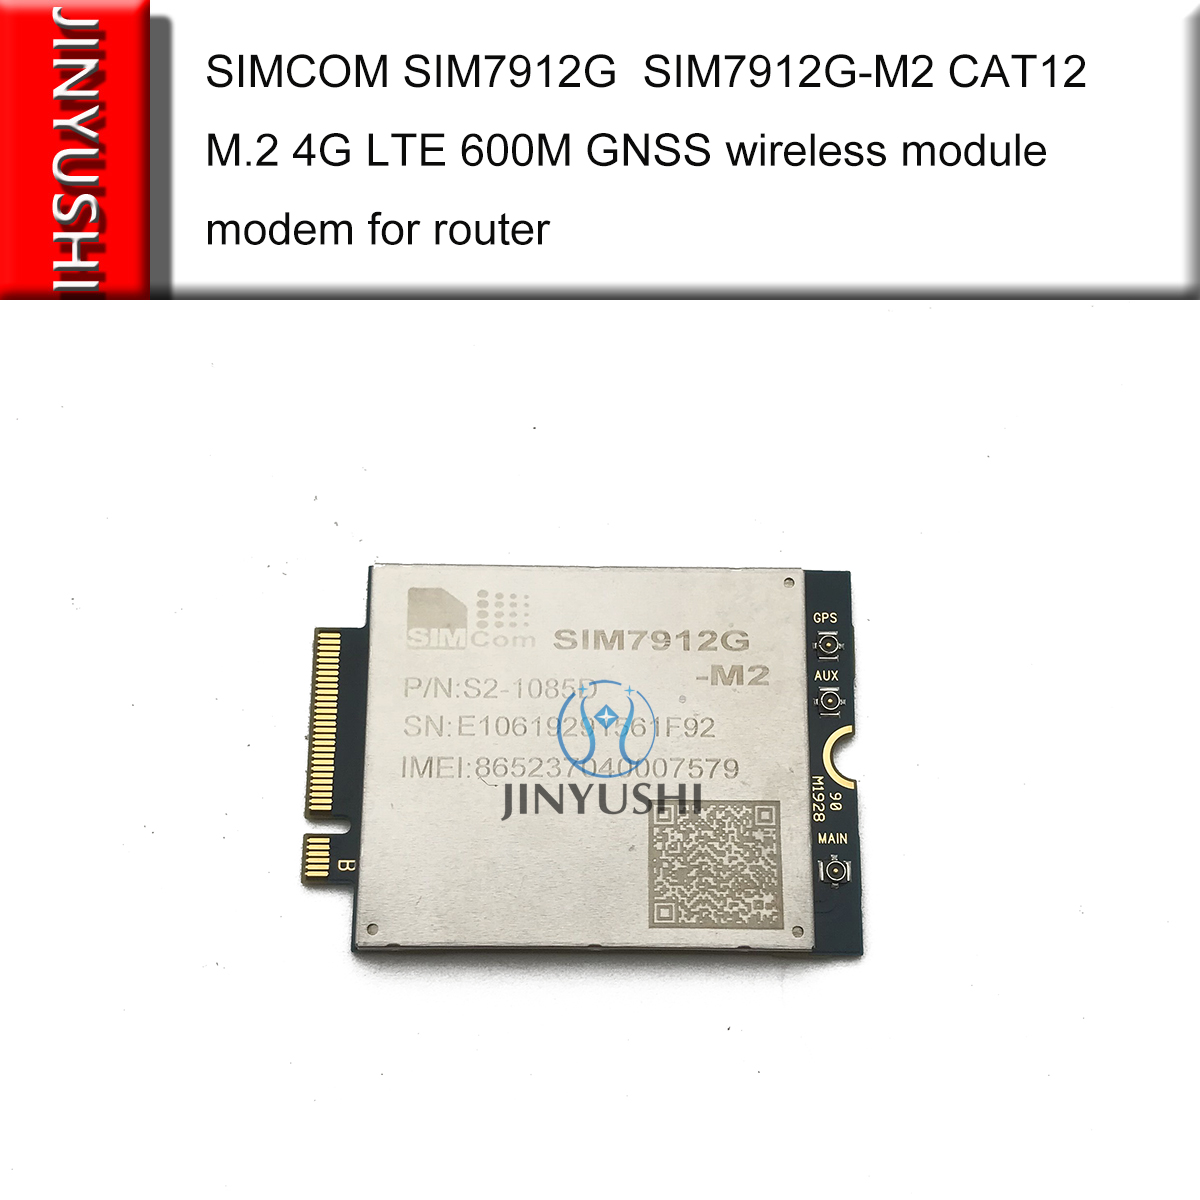 SIMCOM SIM7912G  SIM7912G-M2 CAT12 M.2 4G LTE 600M +Mini Pcie To Usb 3.0 Adapter+ MHF4 To SMA Pigtail+M.2 To Mini Pcie Adapter